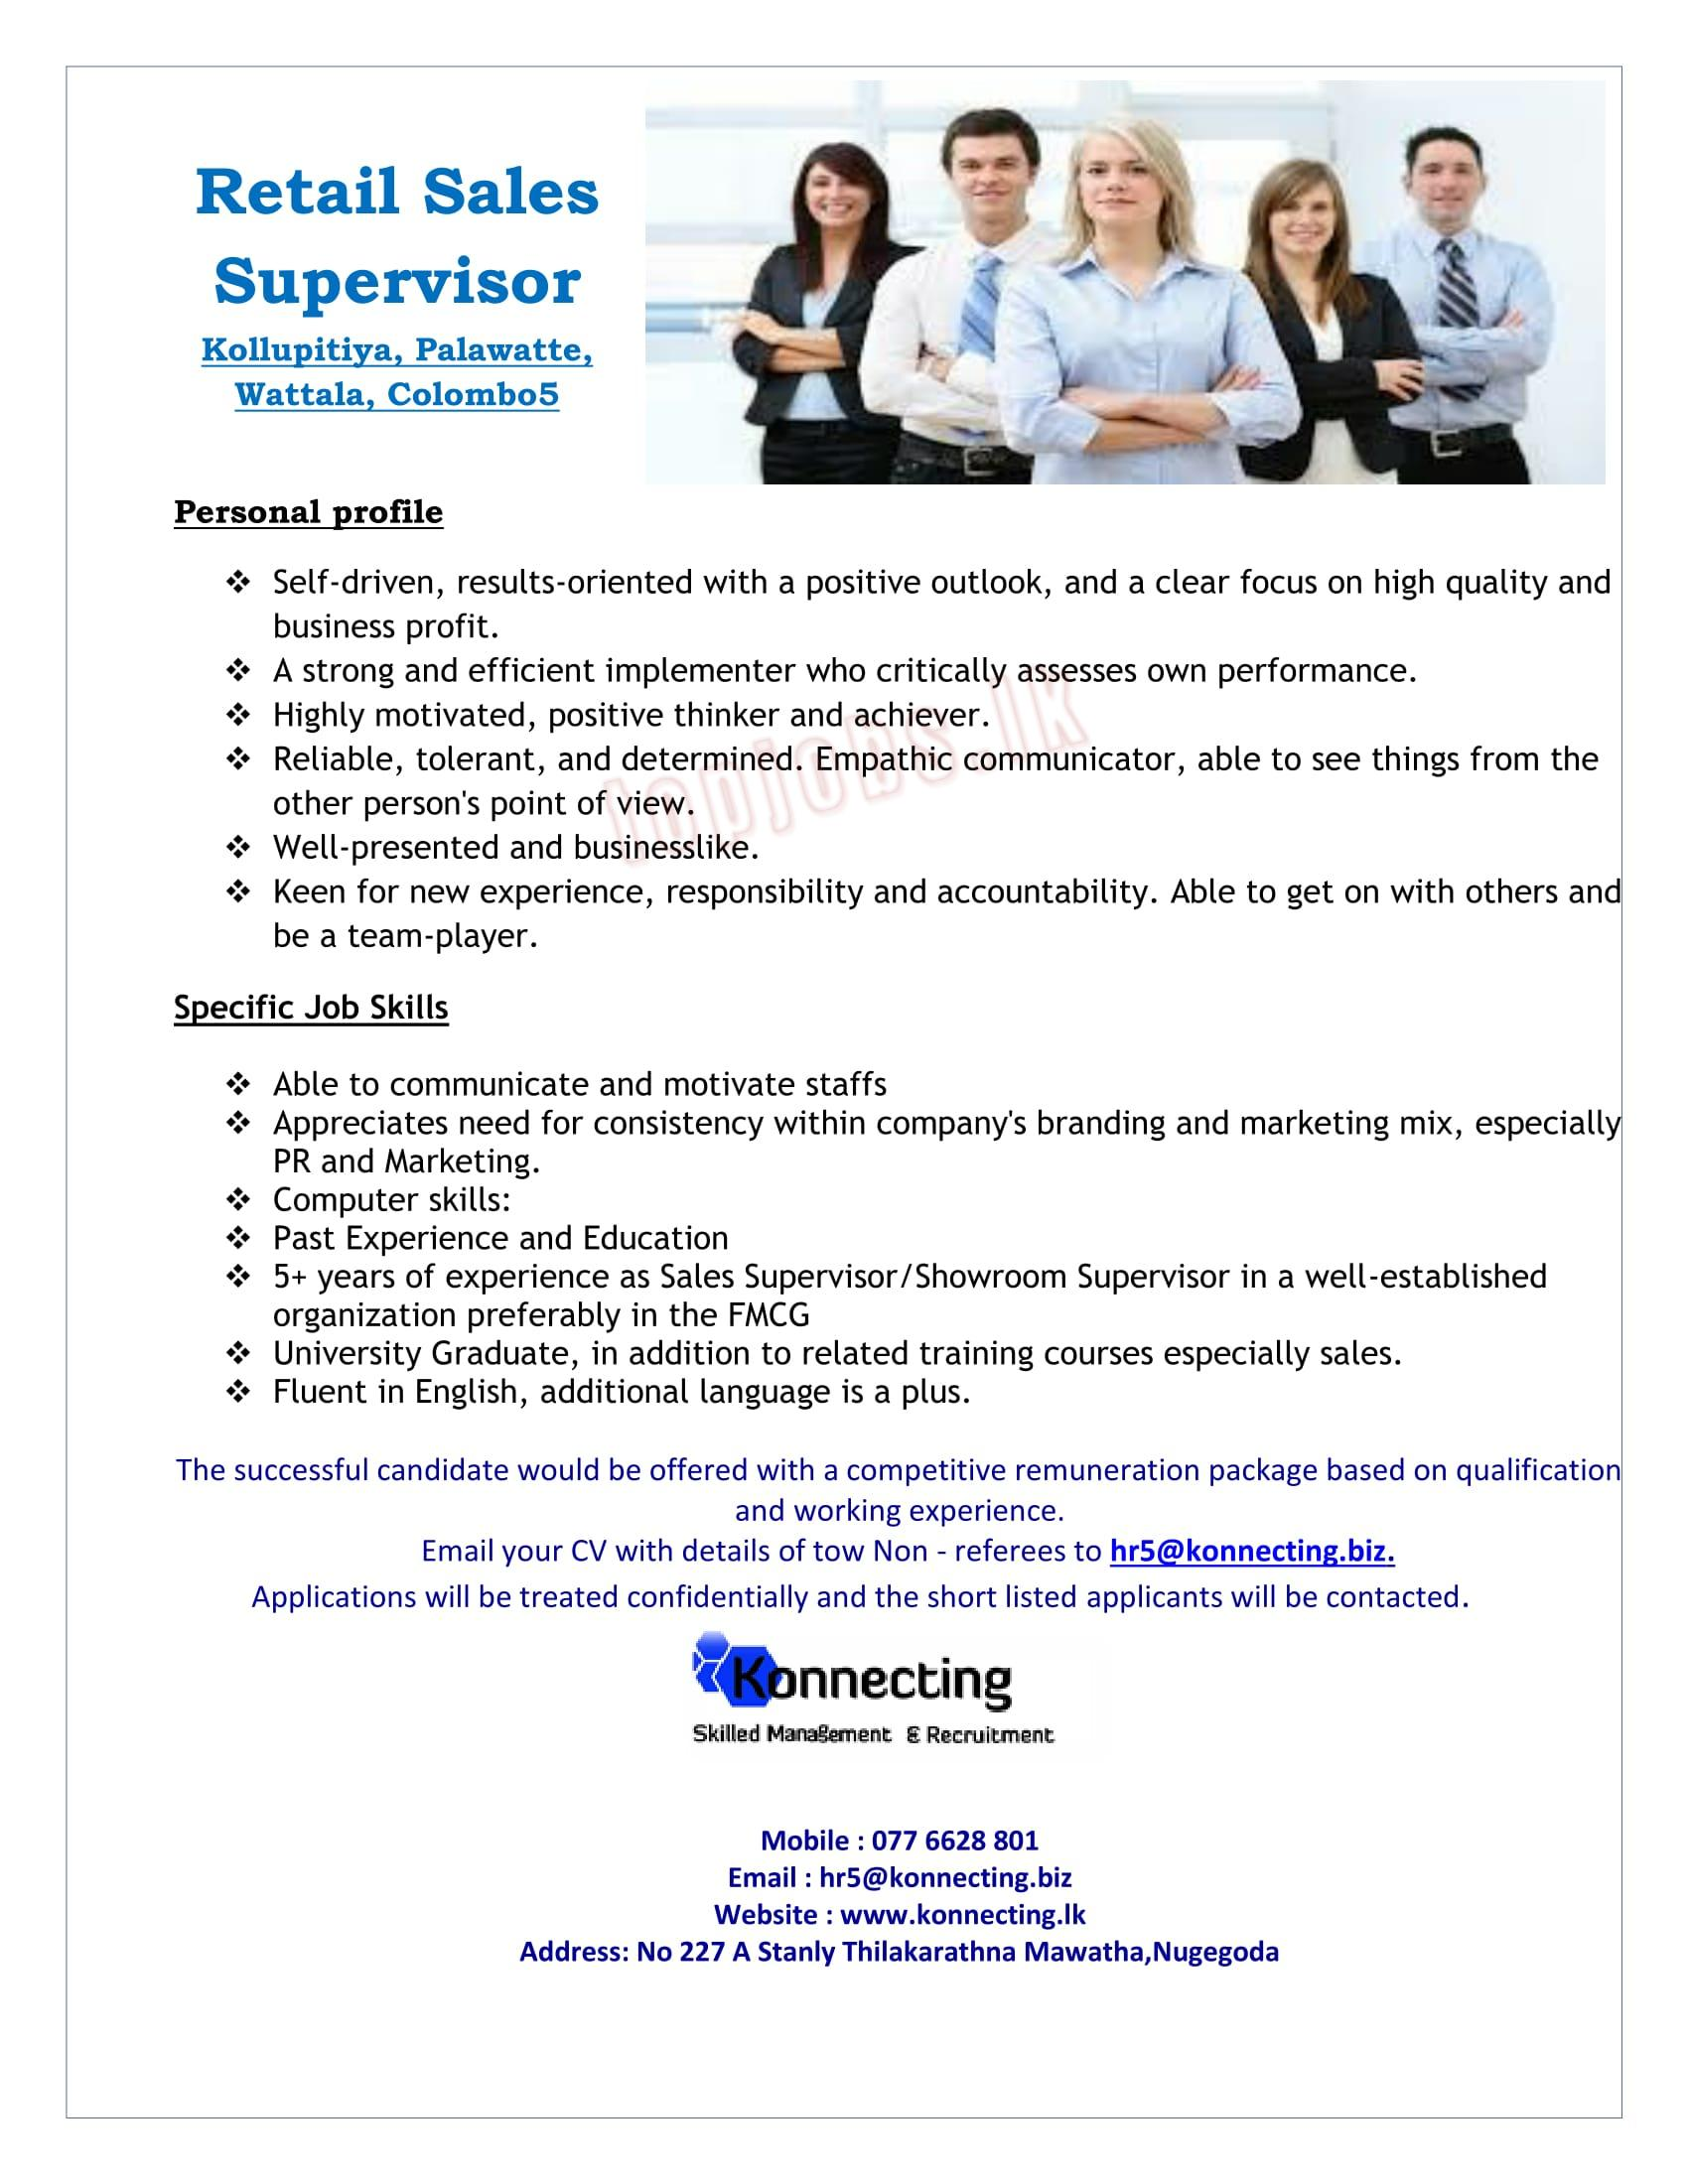 vacancy advertisement retail s supervisor kollupitiya palawatte wattala colombo5